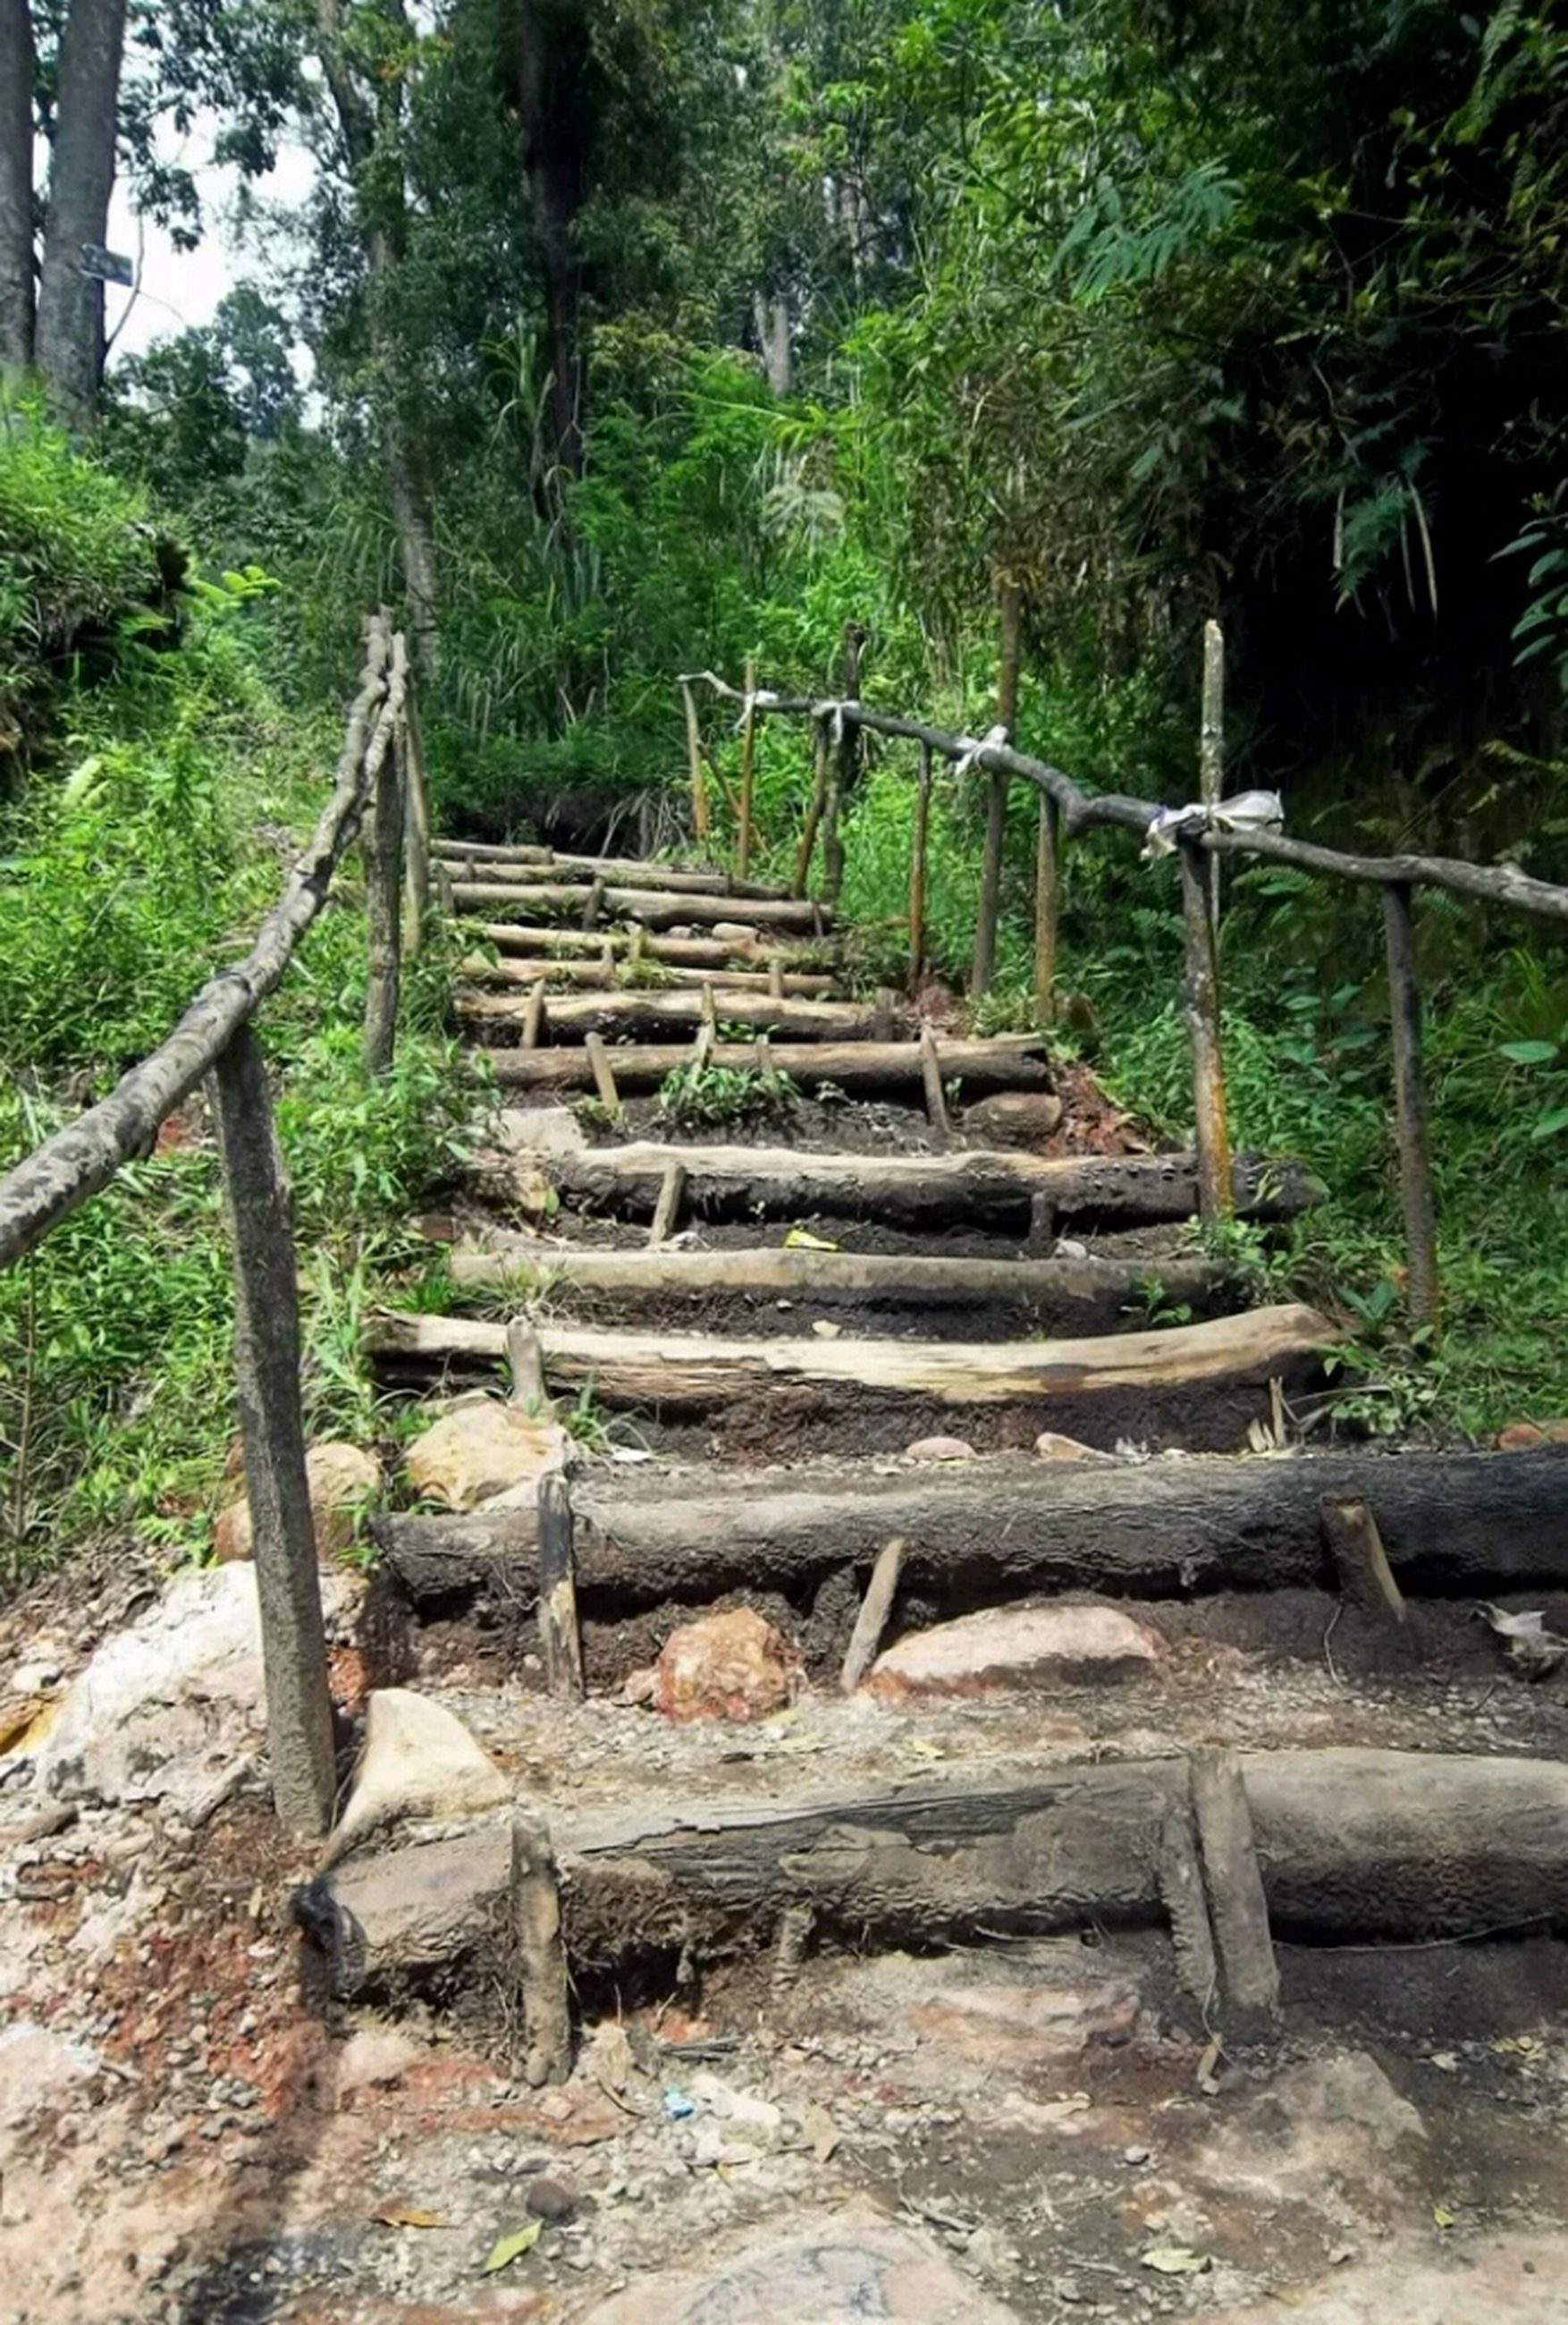 tree, steps, wood - material, forest, railing, built structure, steps and staircases, staircase, tranquility, growth, plant, footbridge, old, nature, the way forward, abandoned, wooden, wood, day, outdoors